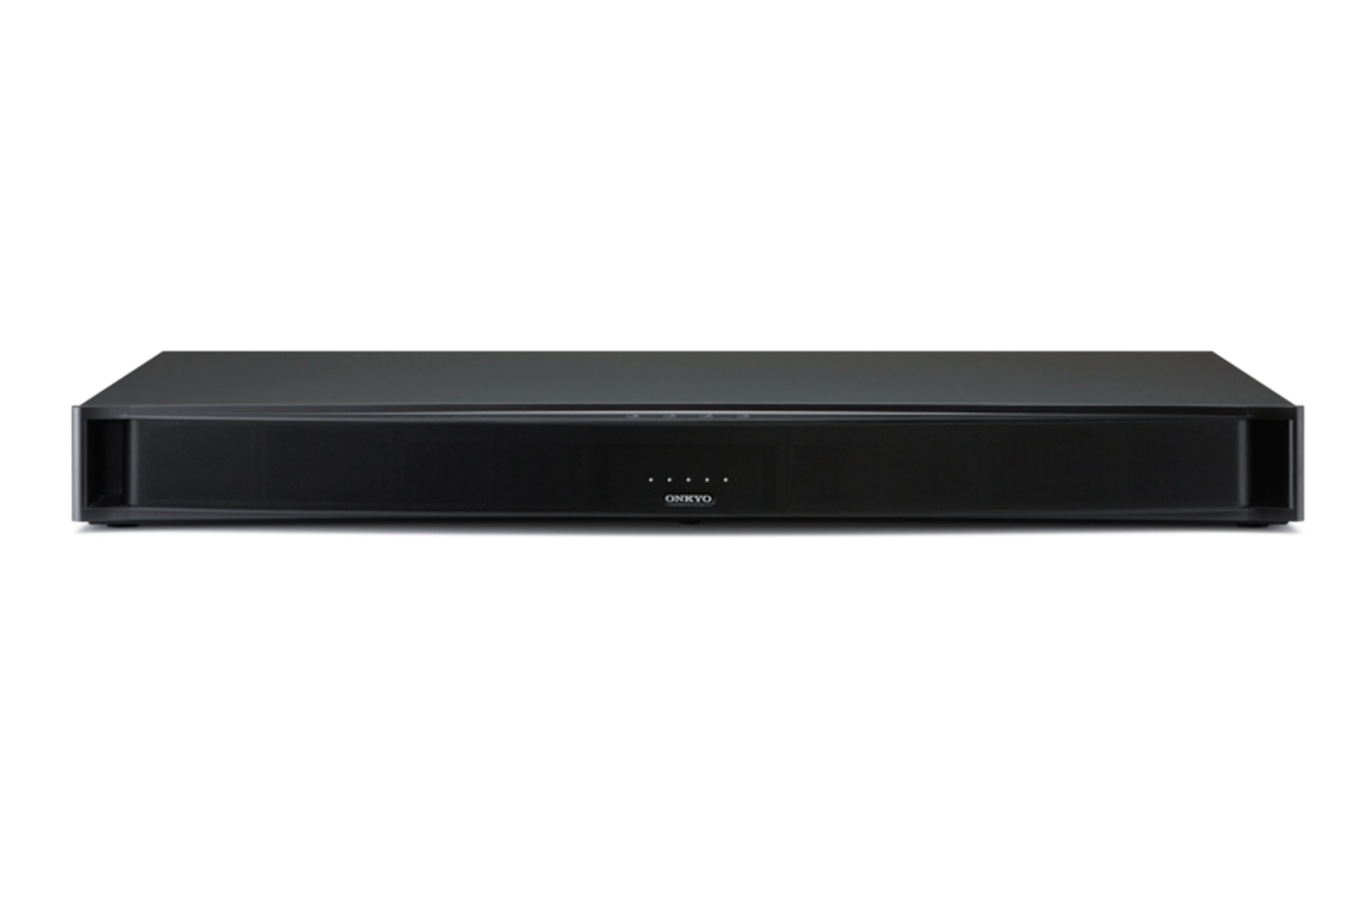 Barre de son Onkyo LST30 BLACK (4052234) | Darty